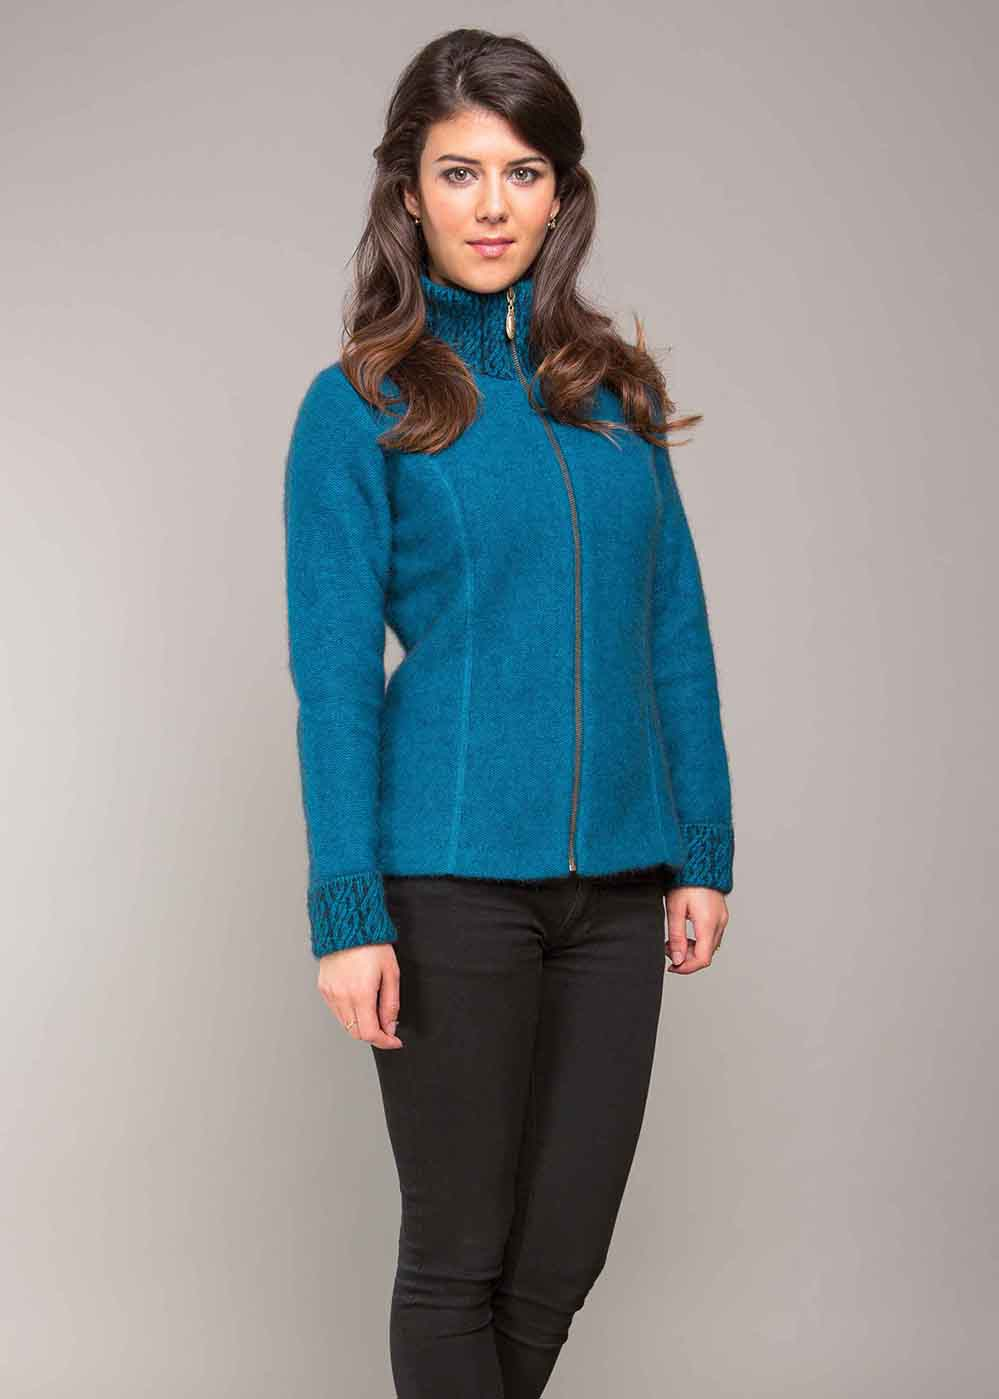 KO476 Possumsilk Two tone Jacket - pacific black